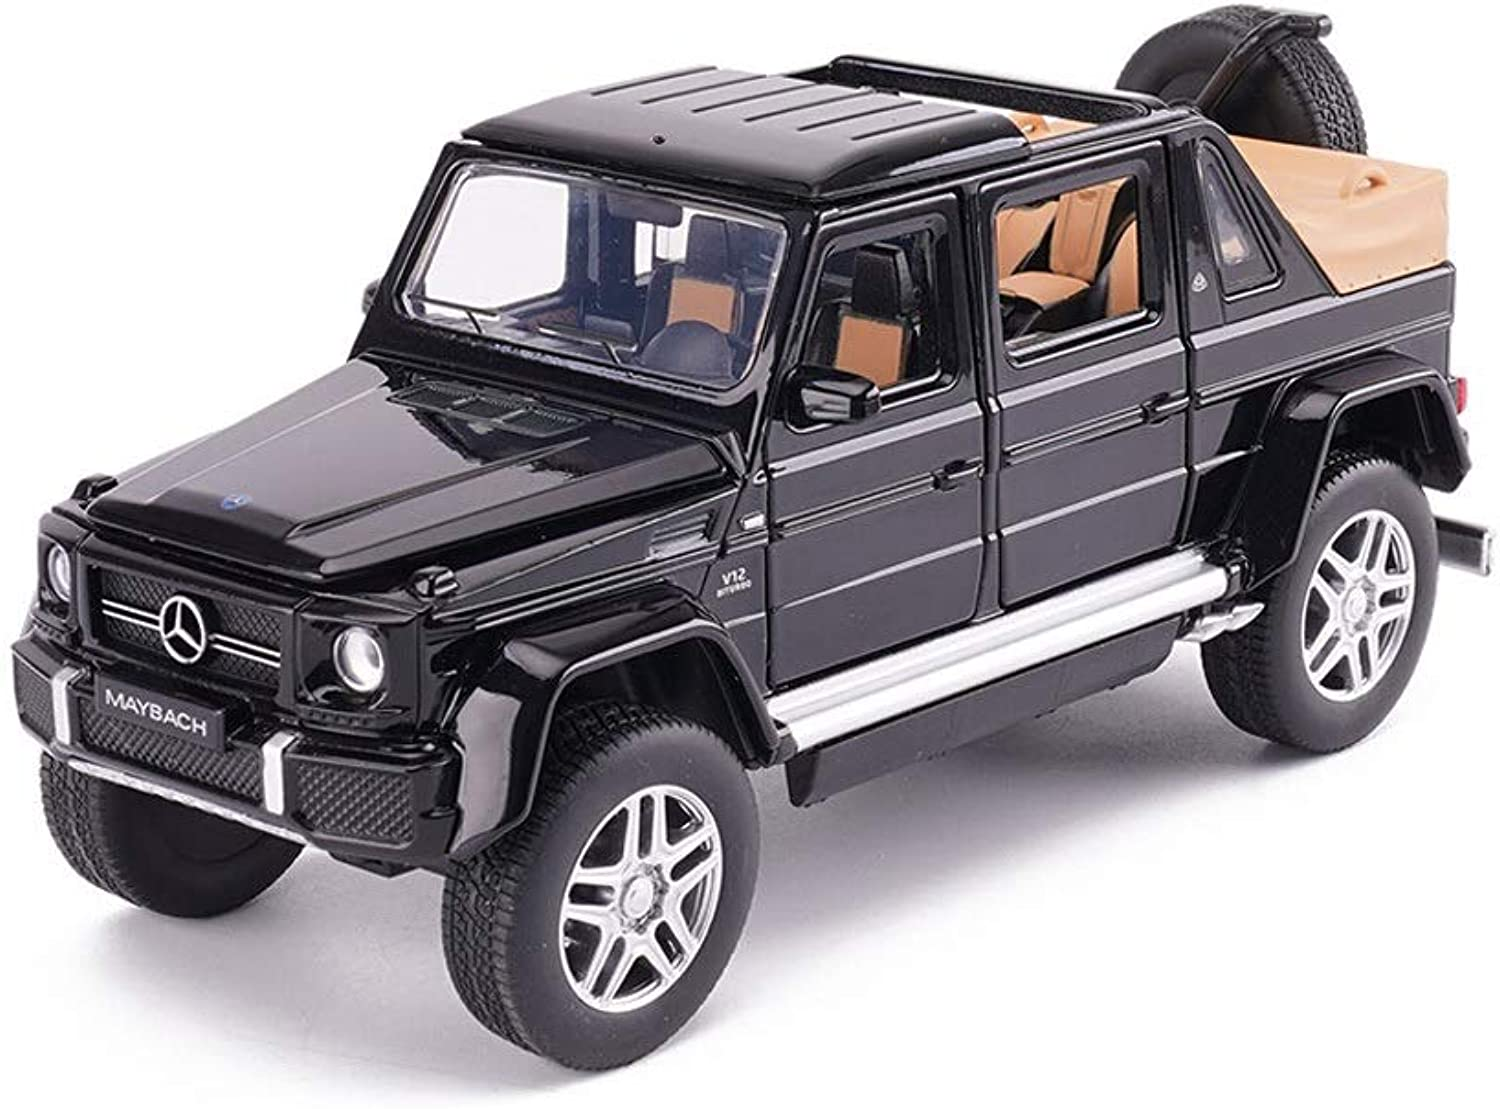 SHLINCar model DieCasting Car Alloy Car Model Maybach G650 Congreenible Model 1 32 Pull Back Sound and Light Car Model Gift for Boys Toddlers Kids (color   Black)